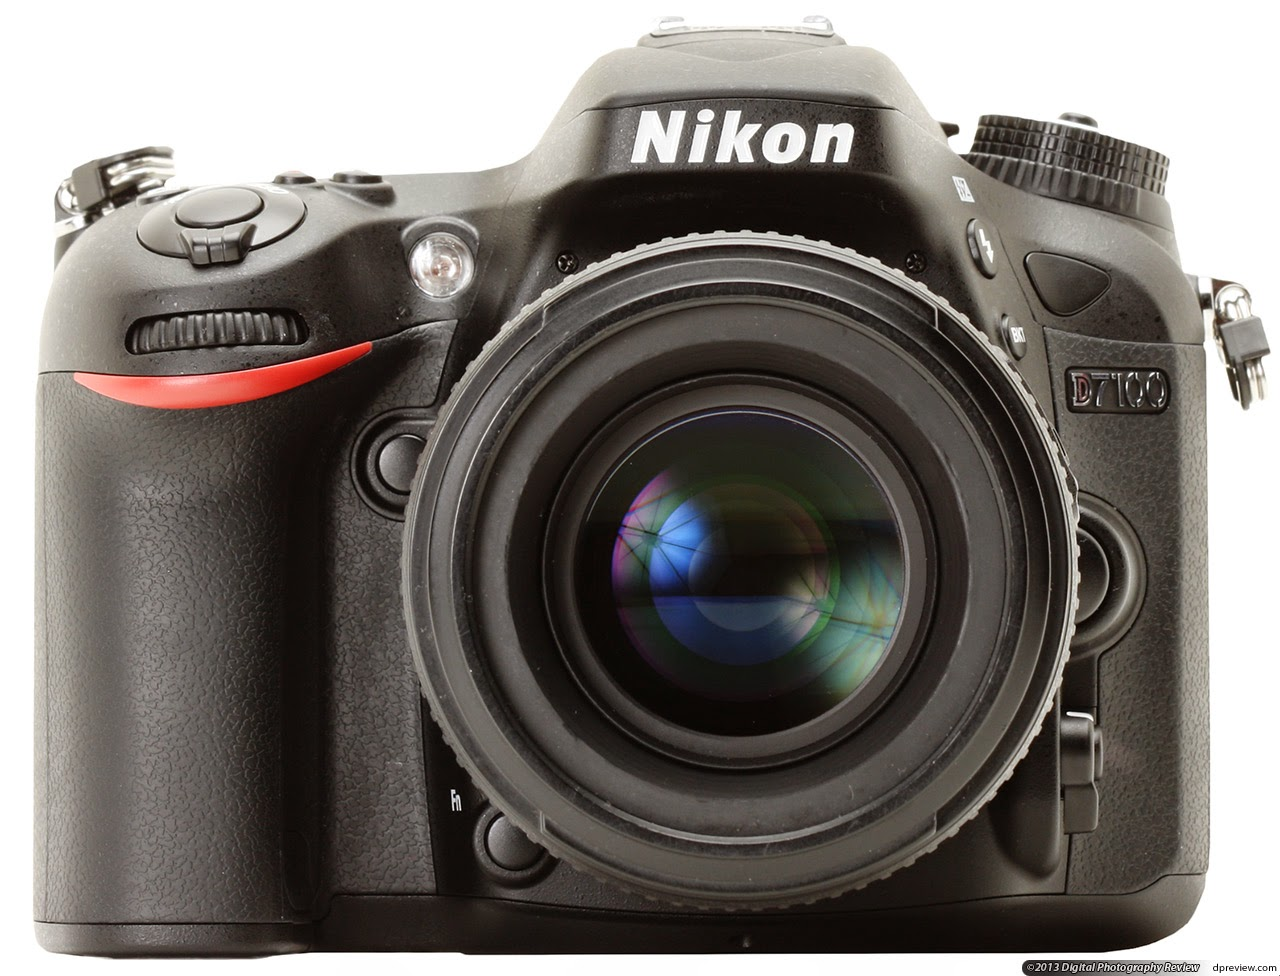 5 Reasons for Choosing Nikon D7100